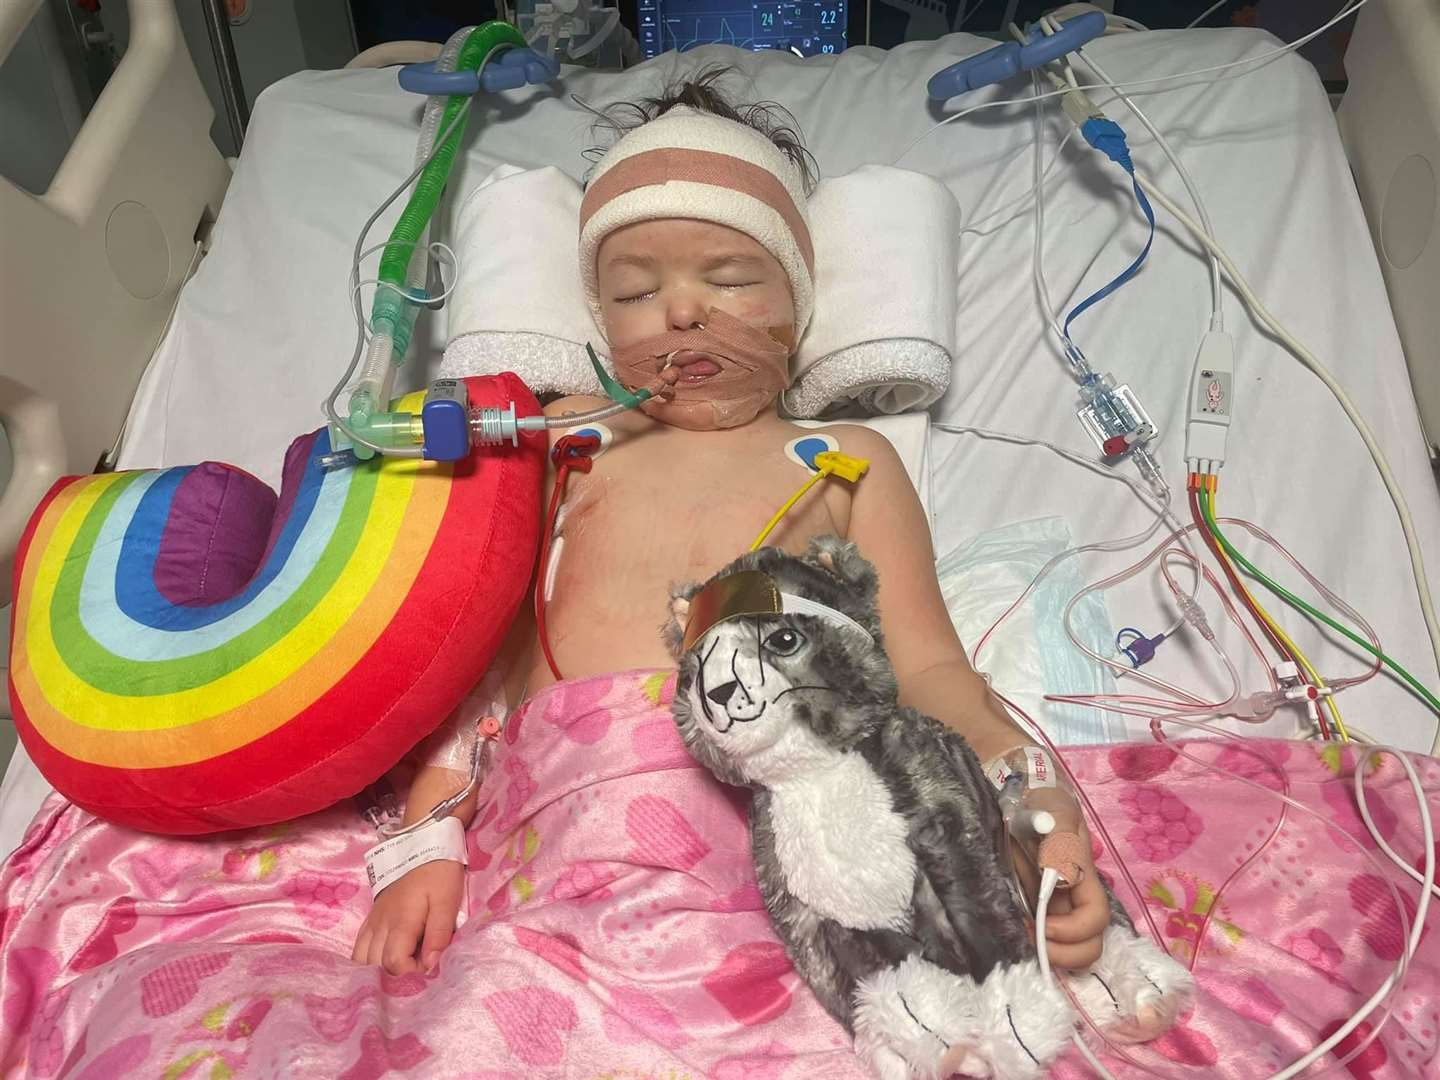 Izzy has been placed on a ventilator for support. Photo: Isobel's Army Facebook Page